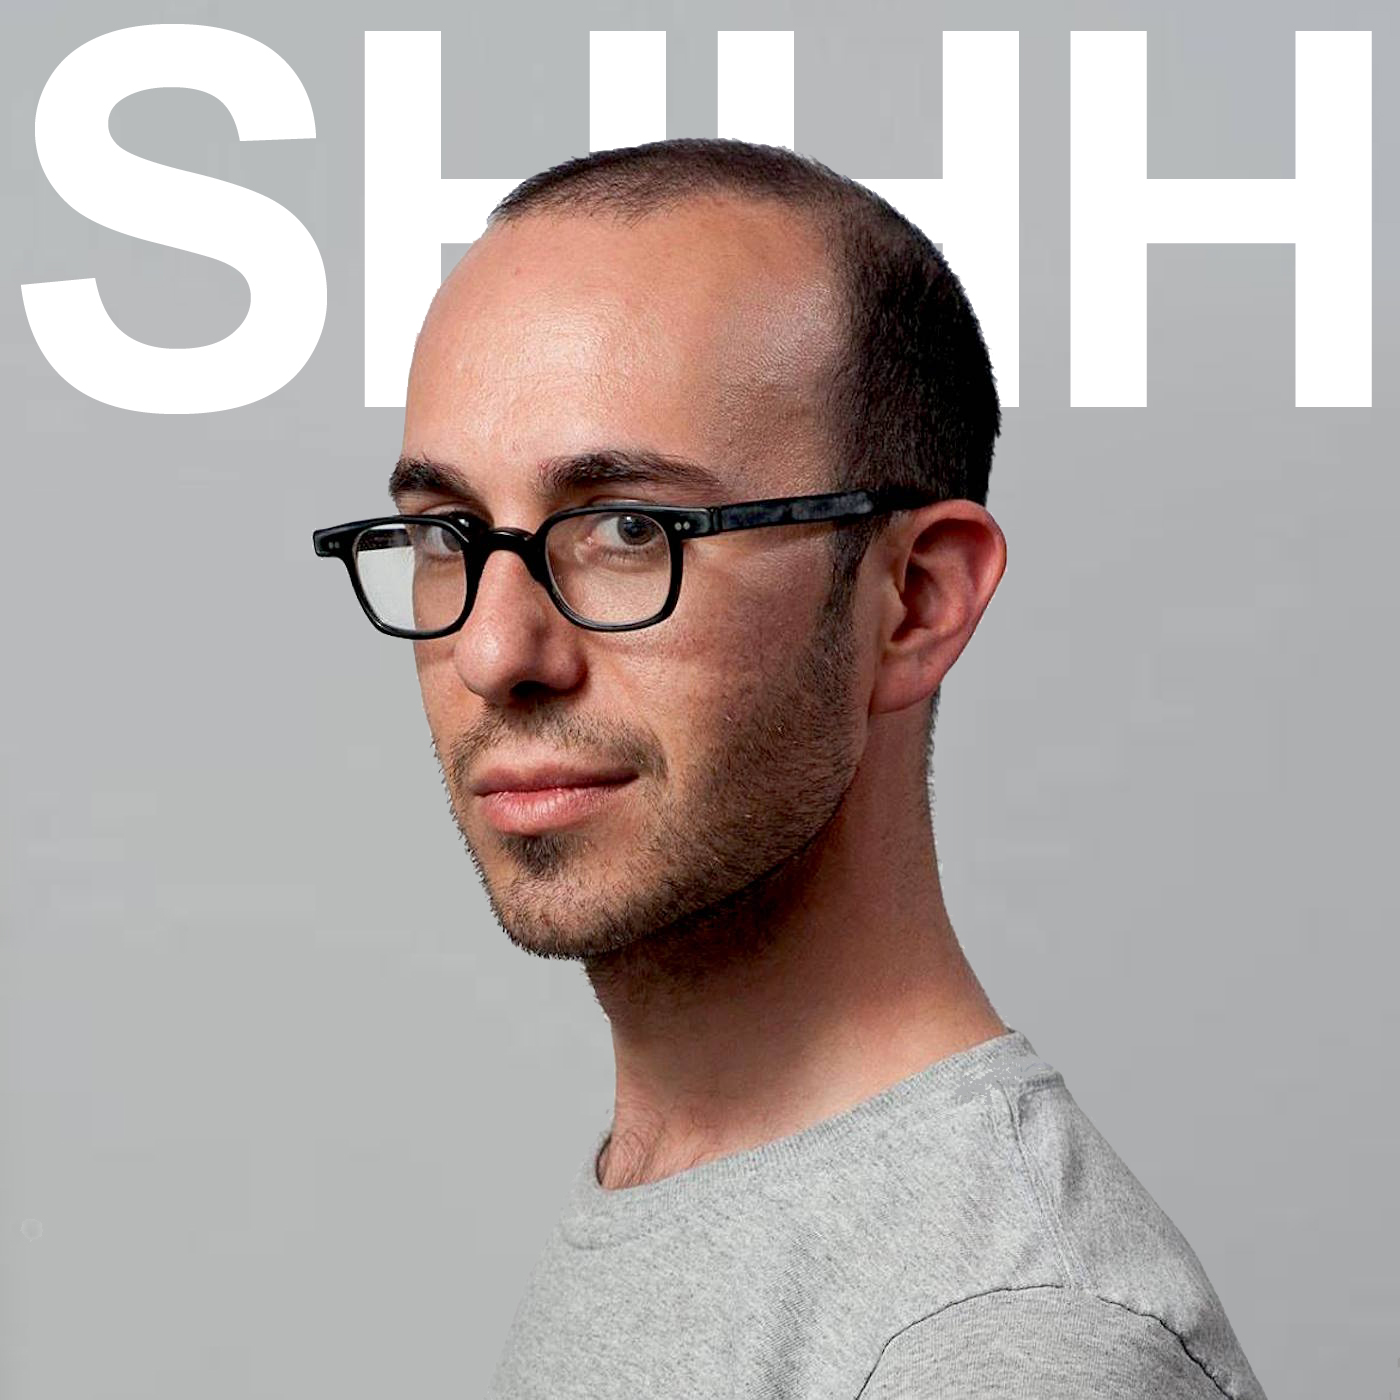 SHHH: The Poopcast (aka S**t and Shame with Shawn)